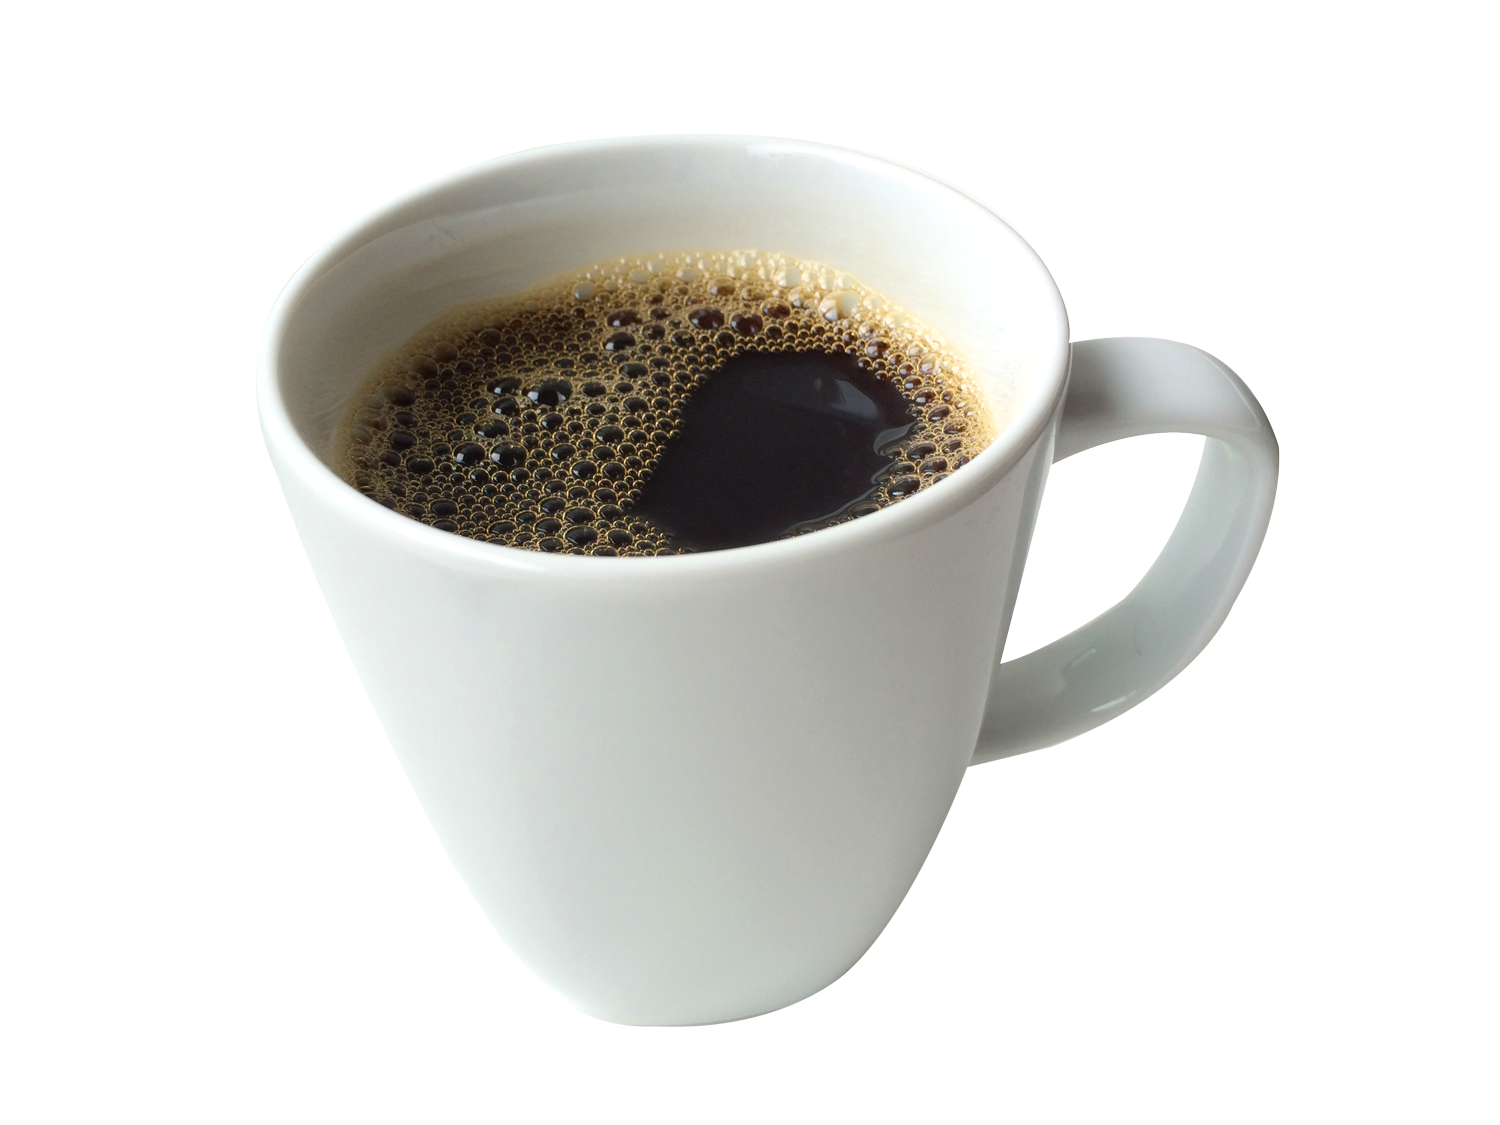 Http Www Pngpix Com Download Coffee Cup Png Image 2